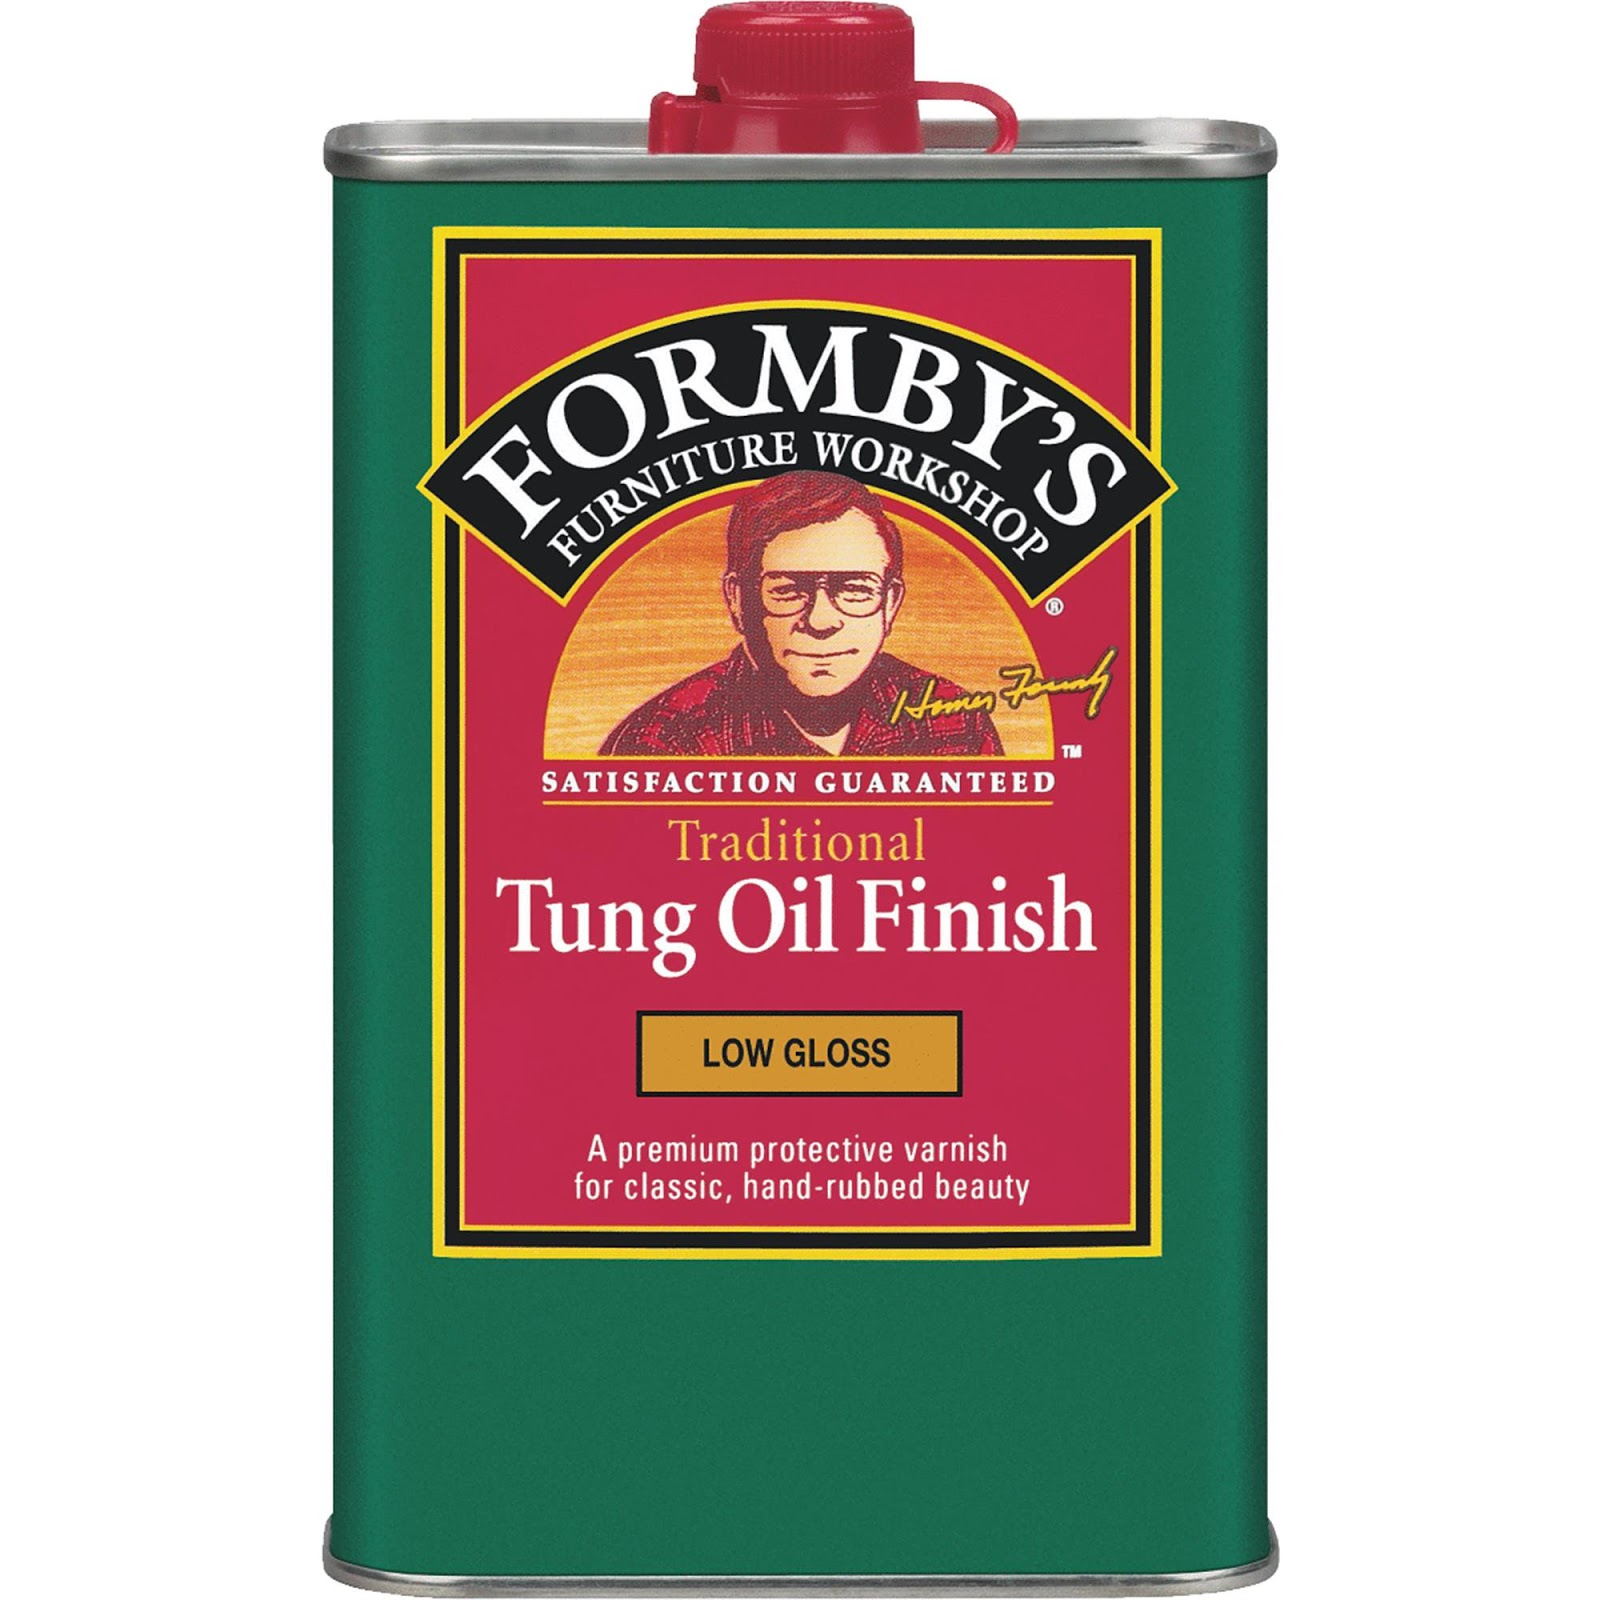 Tung oil to protect wood counters